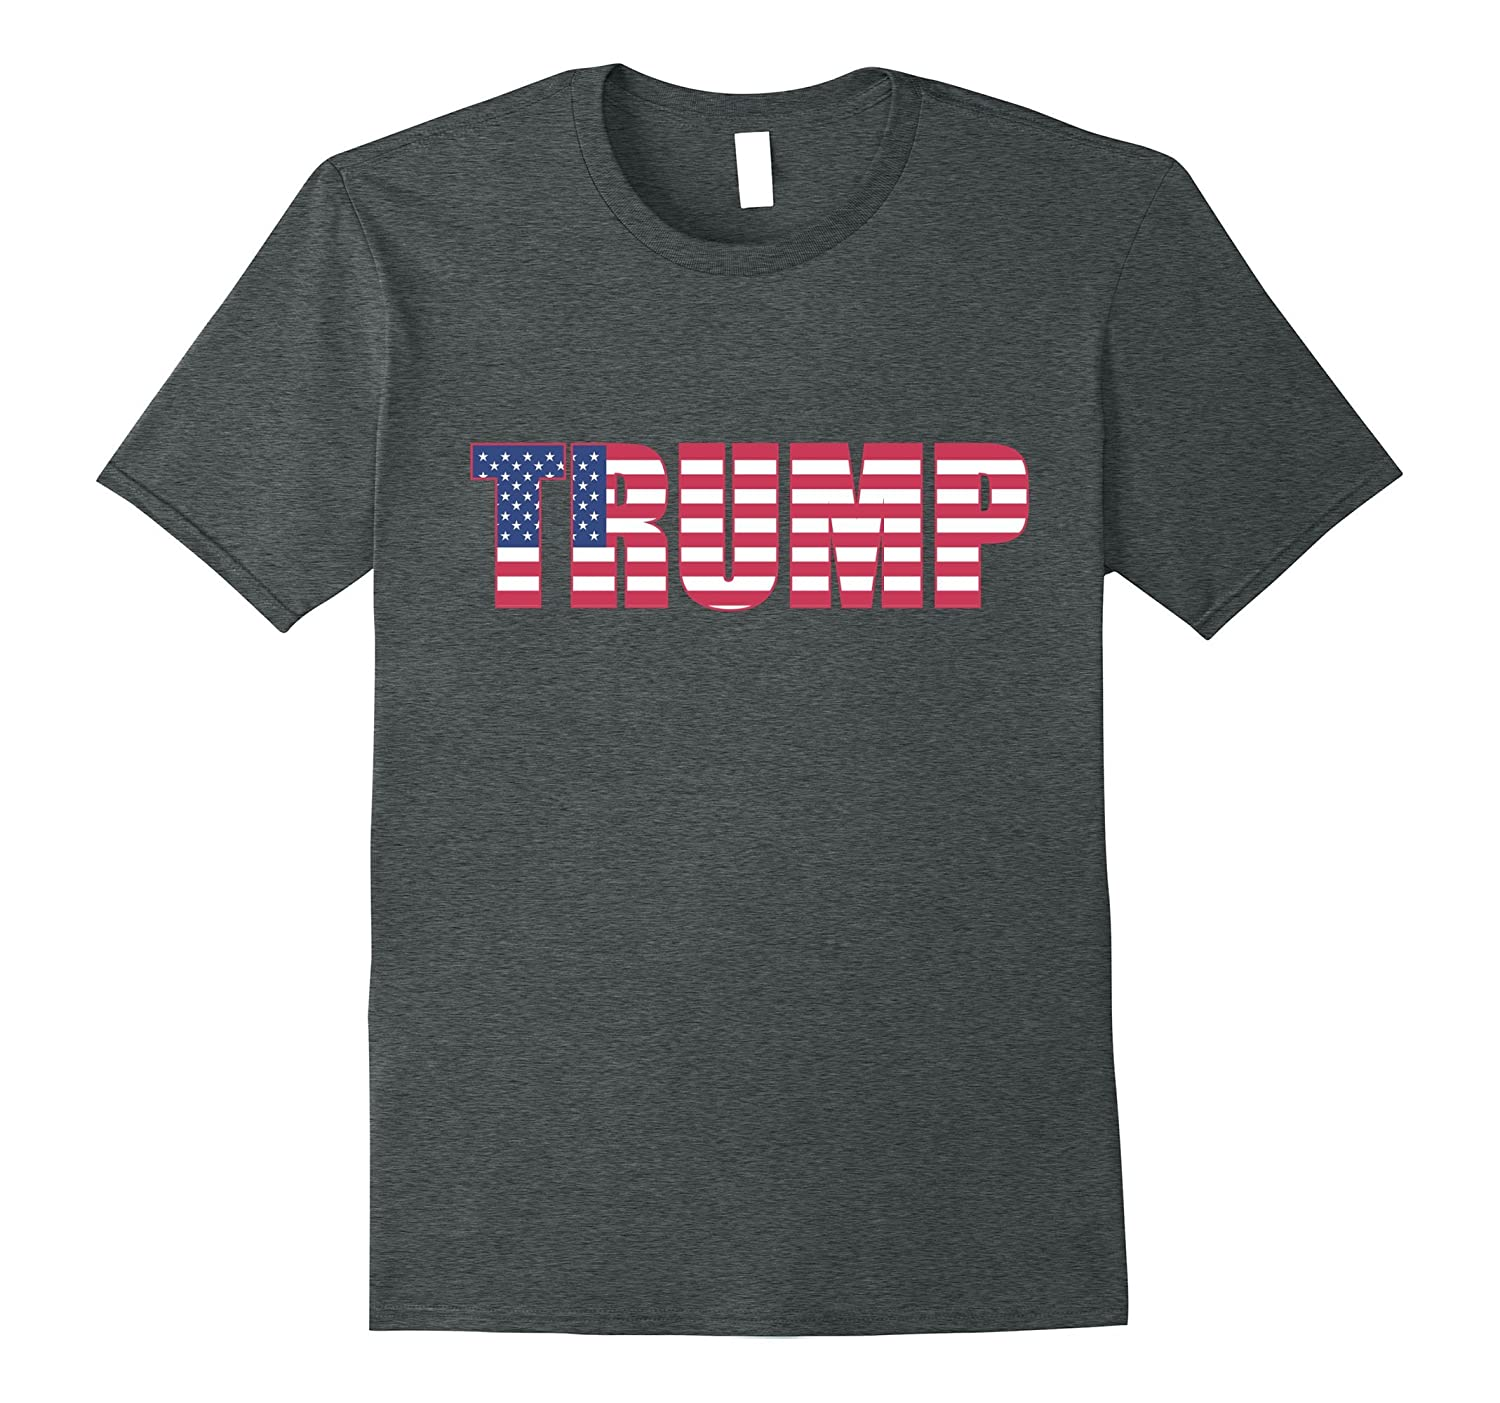 4th of July Independence Day US Flag Pro Trump T-Shirt Tops-Art